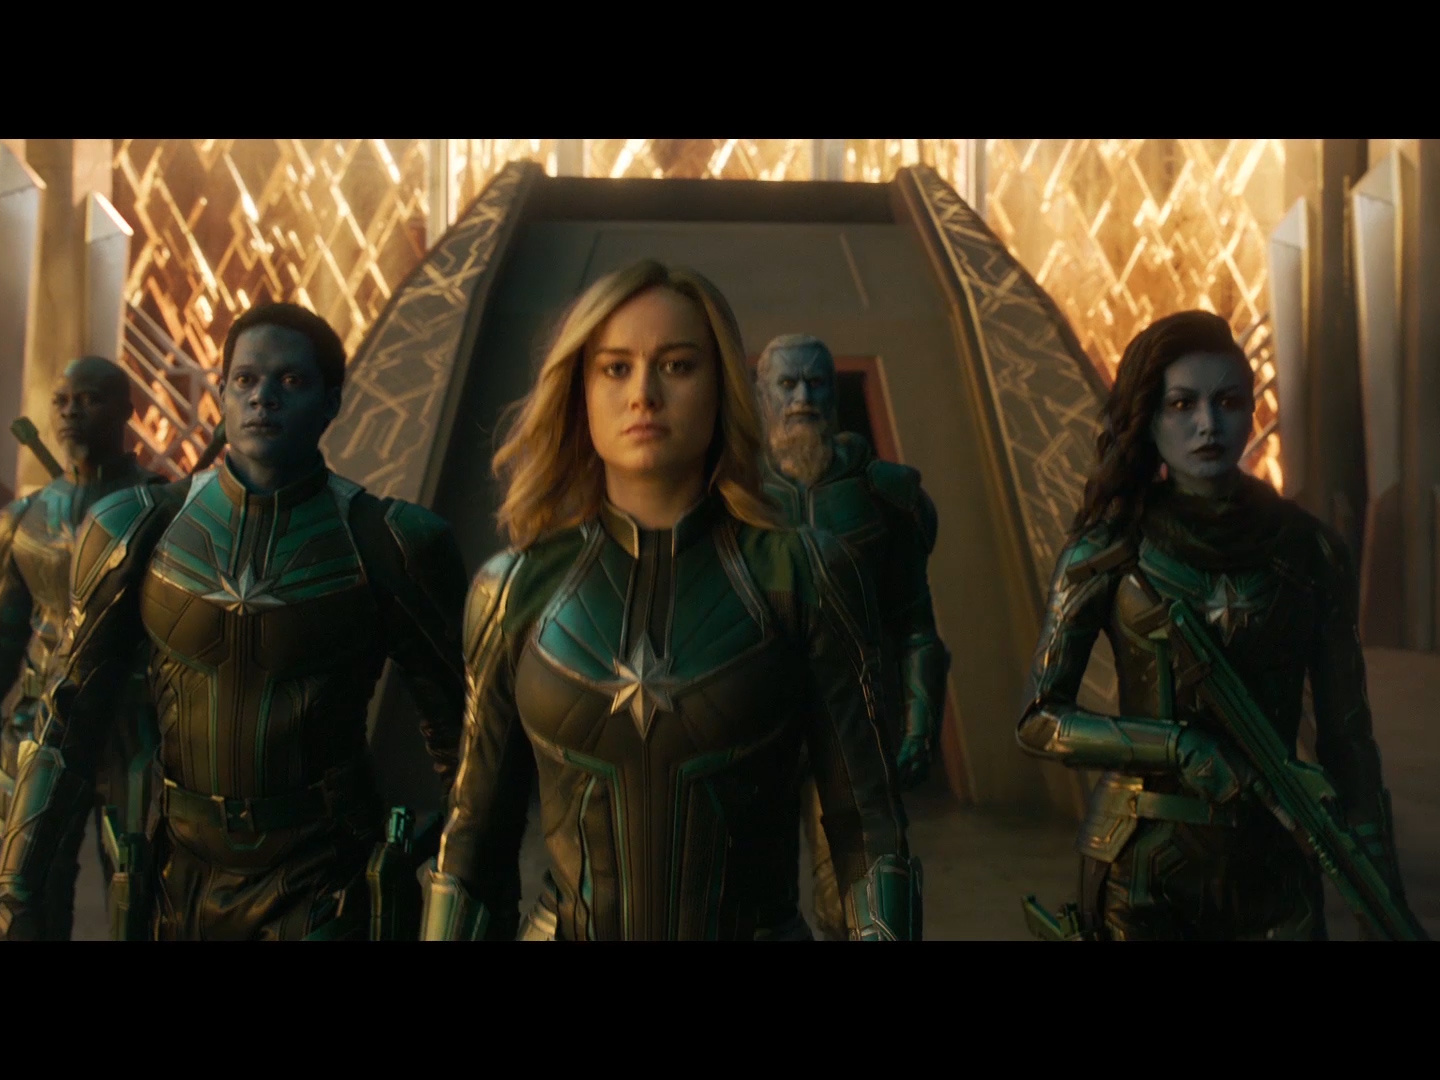 Captain Marvel: Born Free, Buckle Up Safe, Higher Super Bowl, Punch Review Thumbnail